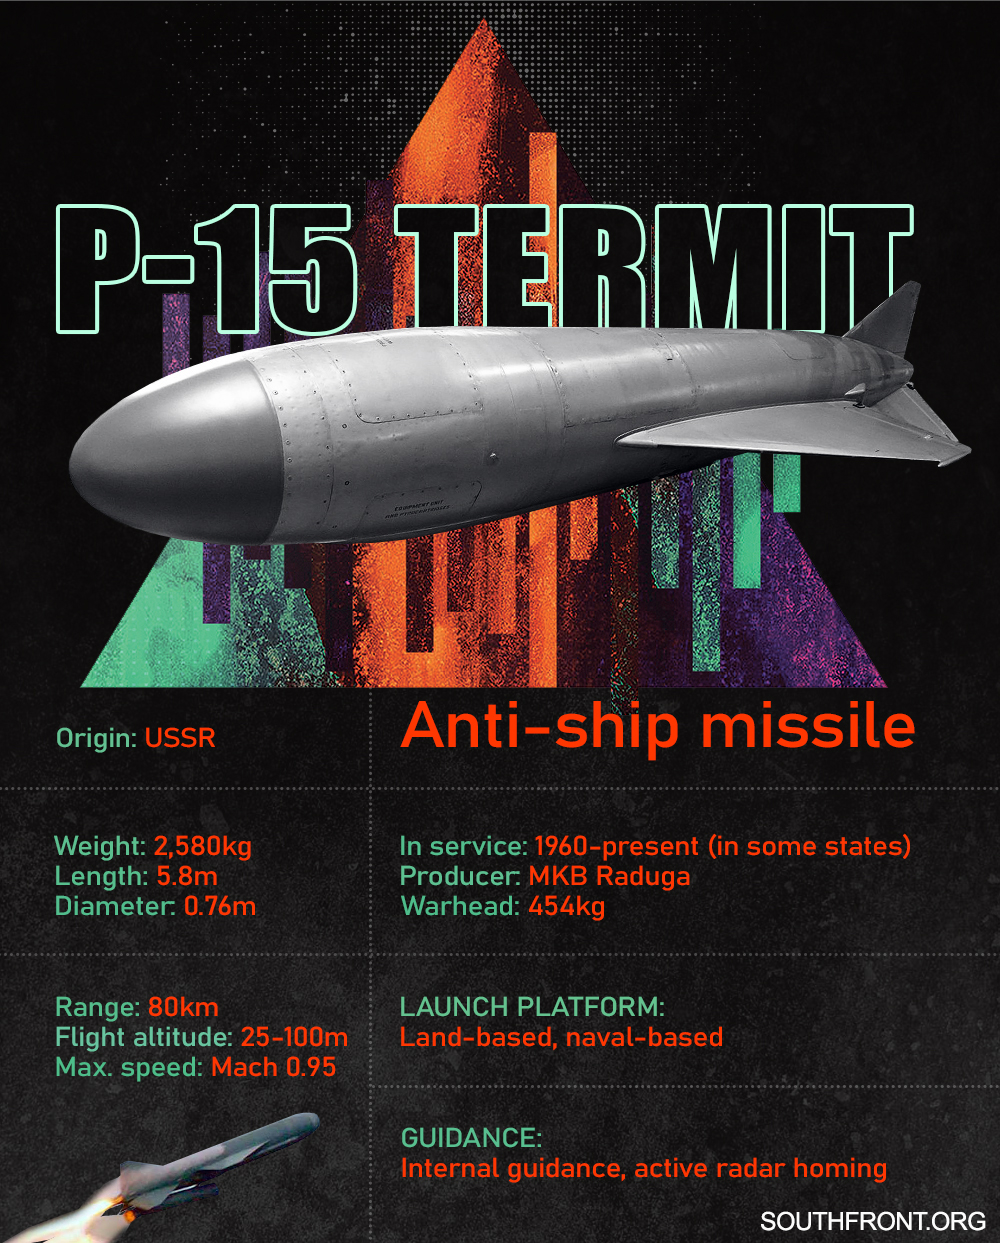 P-15 Termit Anti-Ship Missile (Infographics)